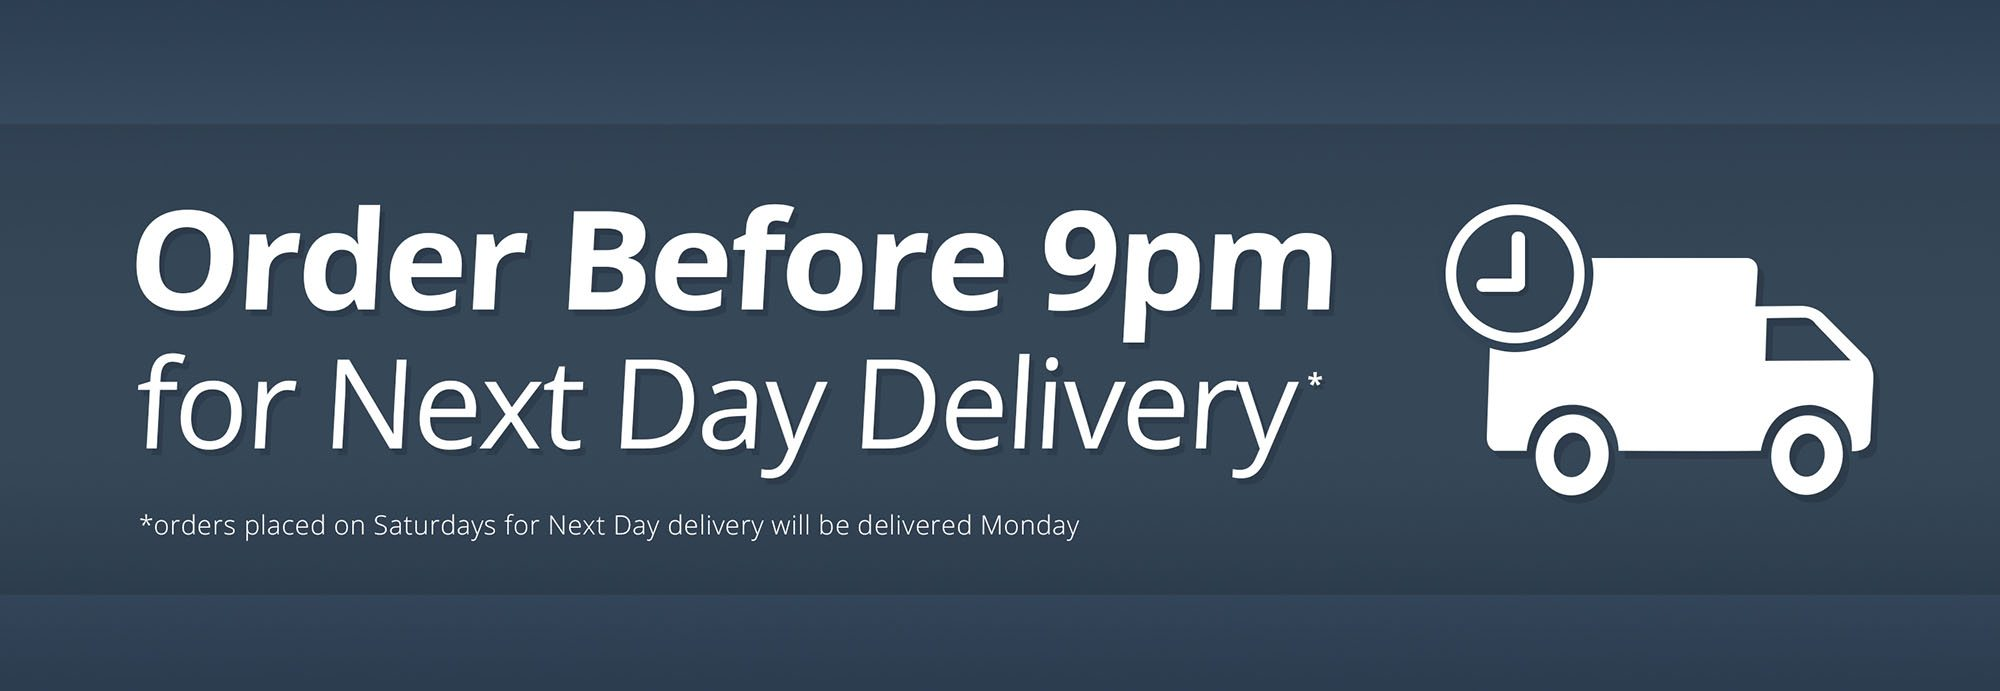 Next Day Delivery Available Until 9pm